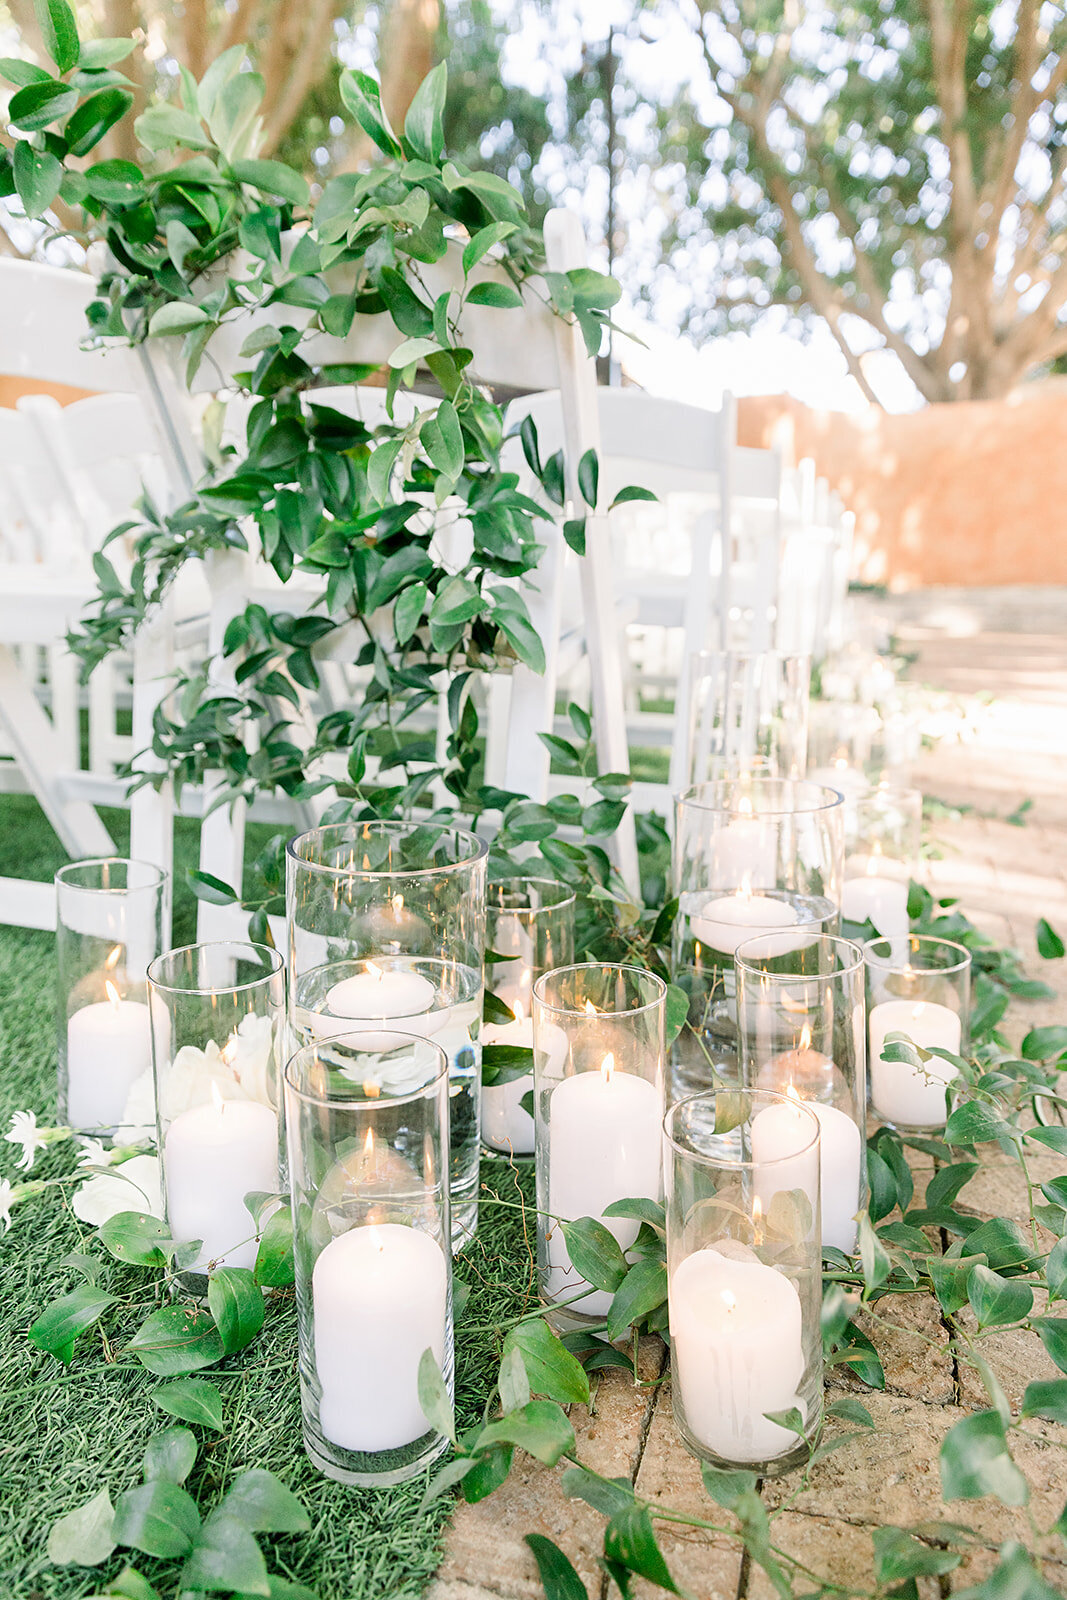 weddings-phoenix-wedding-ceremony-pillar-candles-greenery